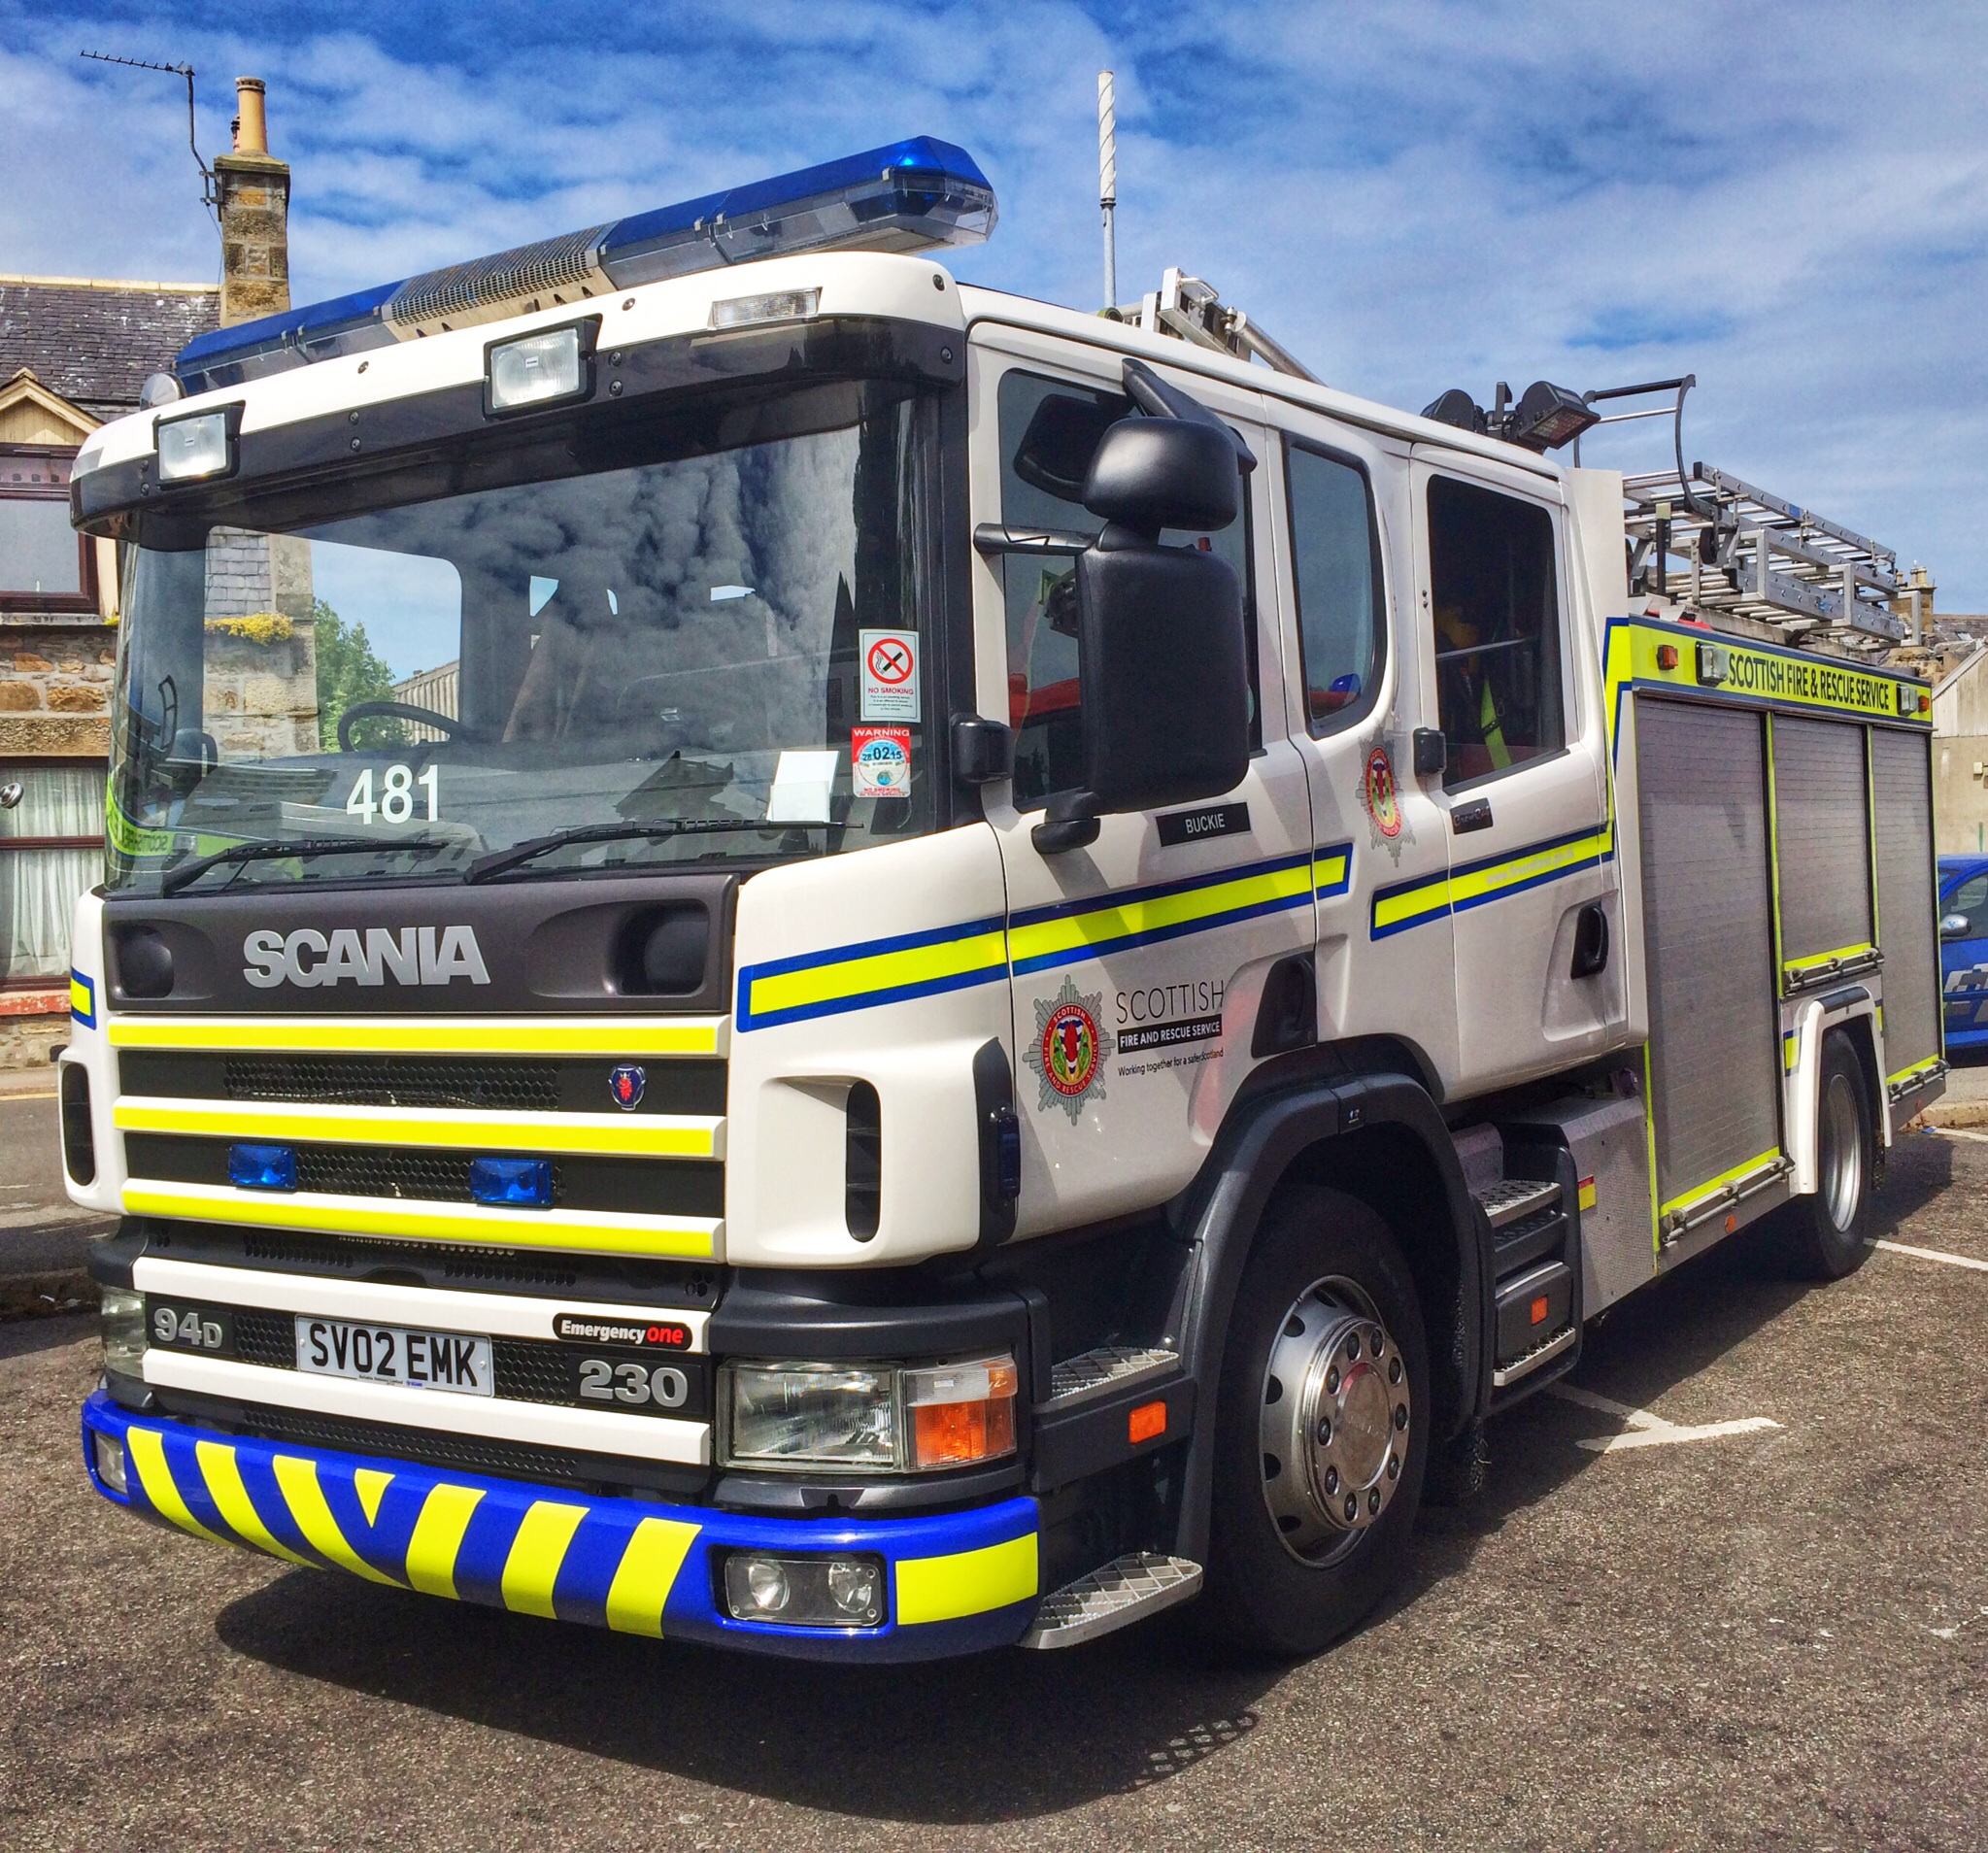 Fire at St Peter's Street in Peterhead being treated as deliberate